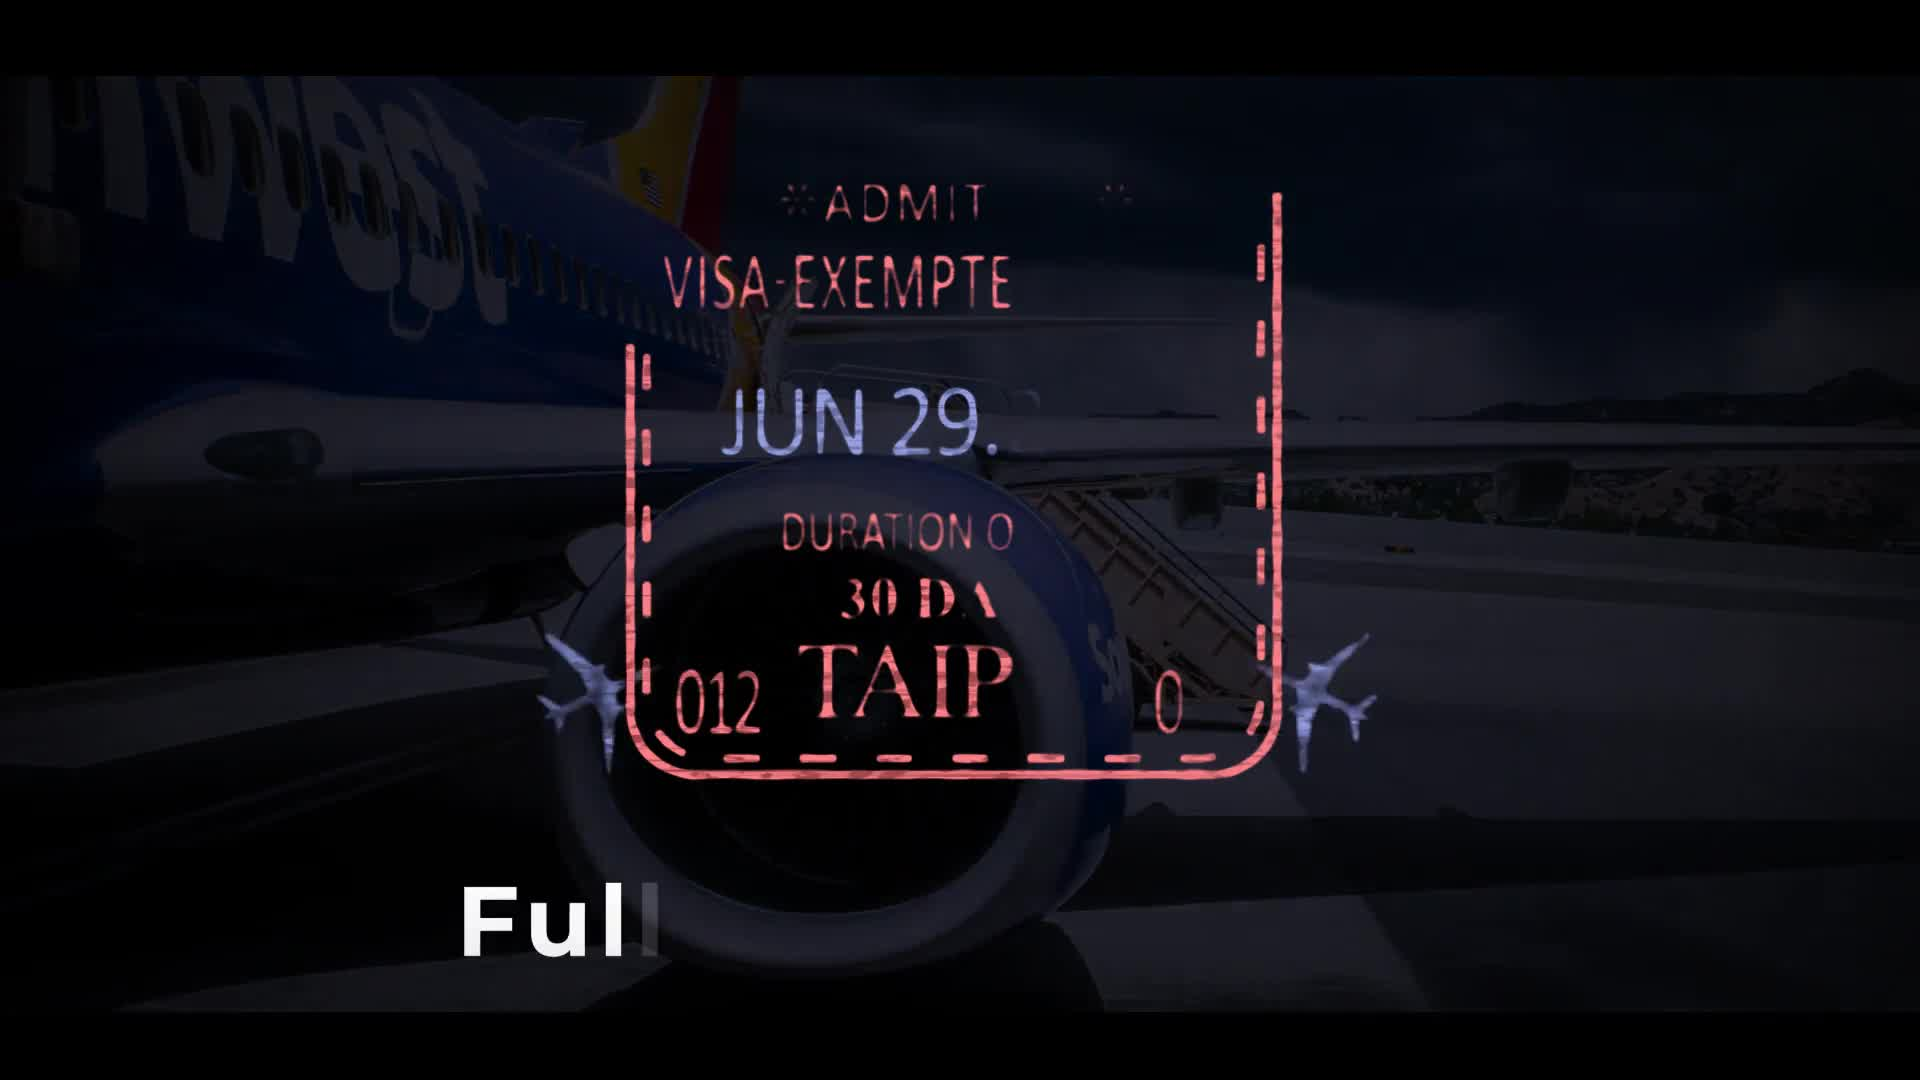 50 Travel Stamps Videohive 23673412 After Effects Image 8